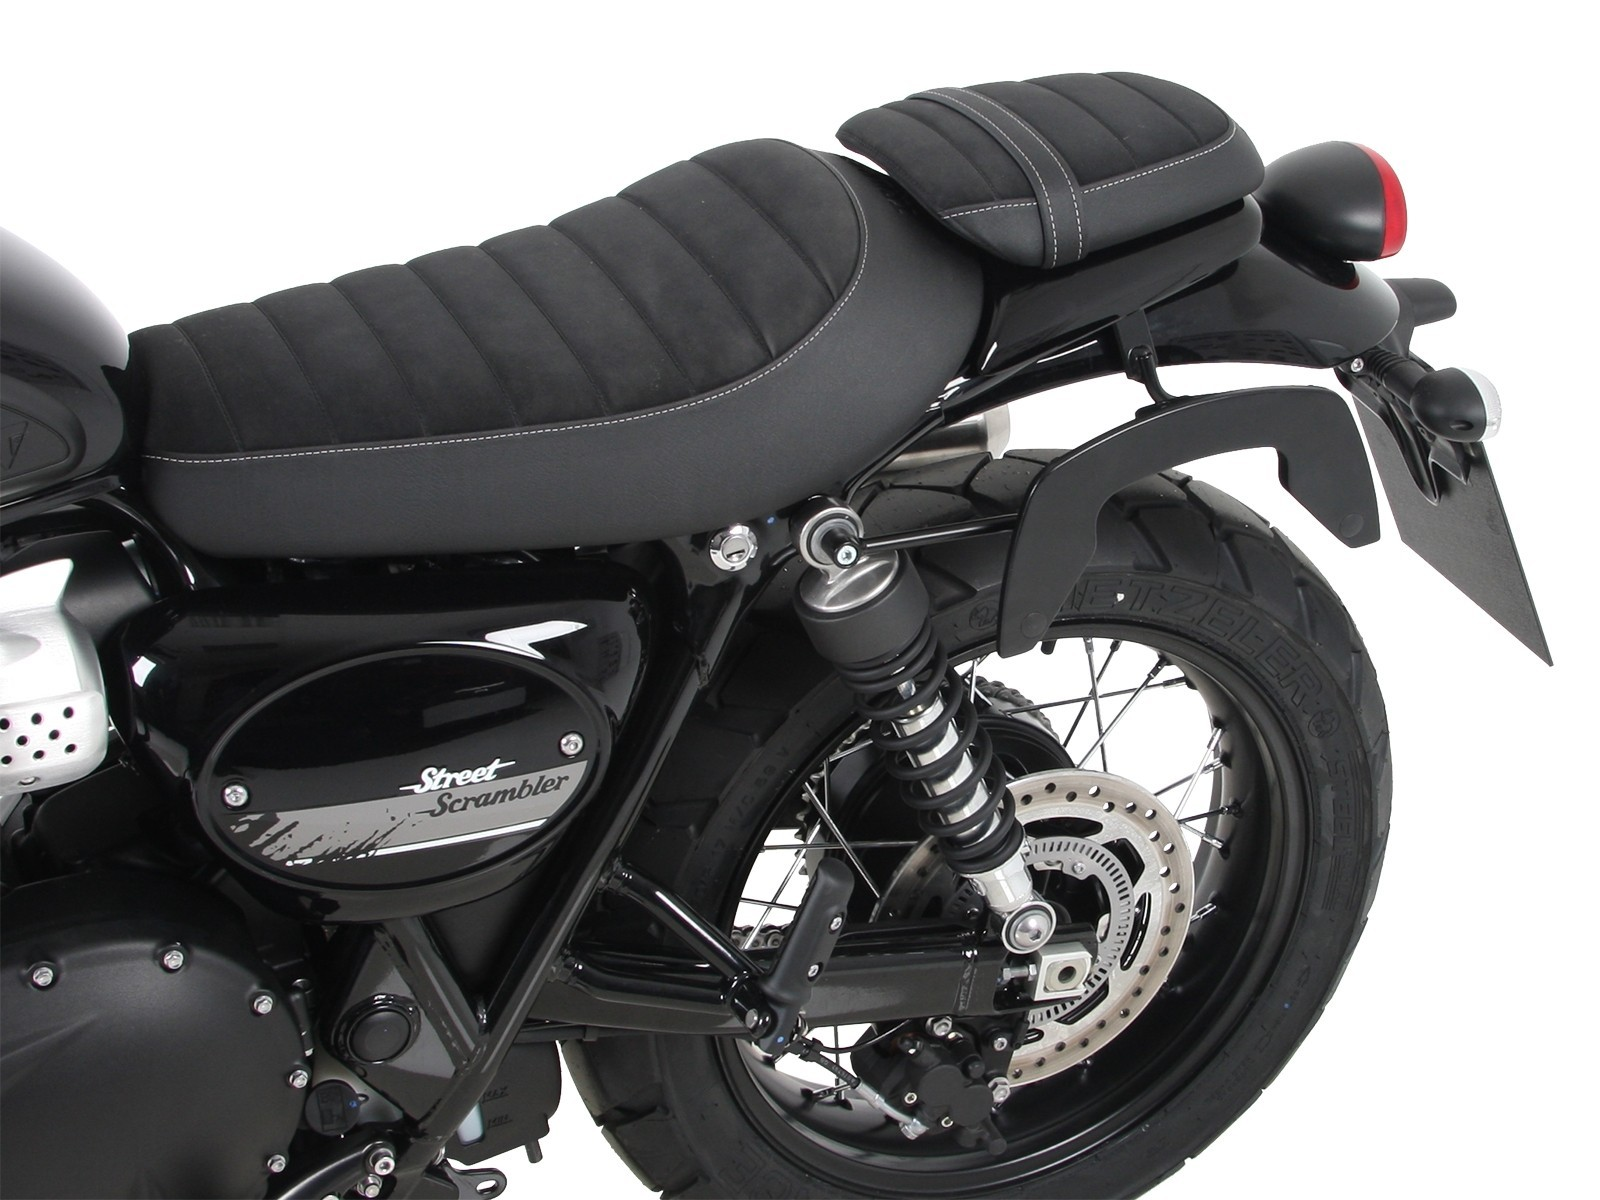 STREET SCRAMBLER C-BOW KIT SINGLE SIDED